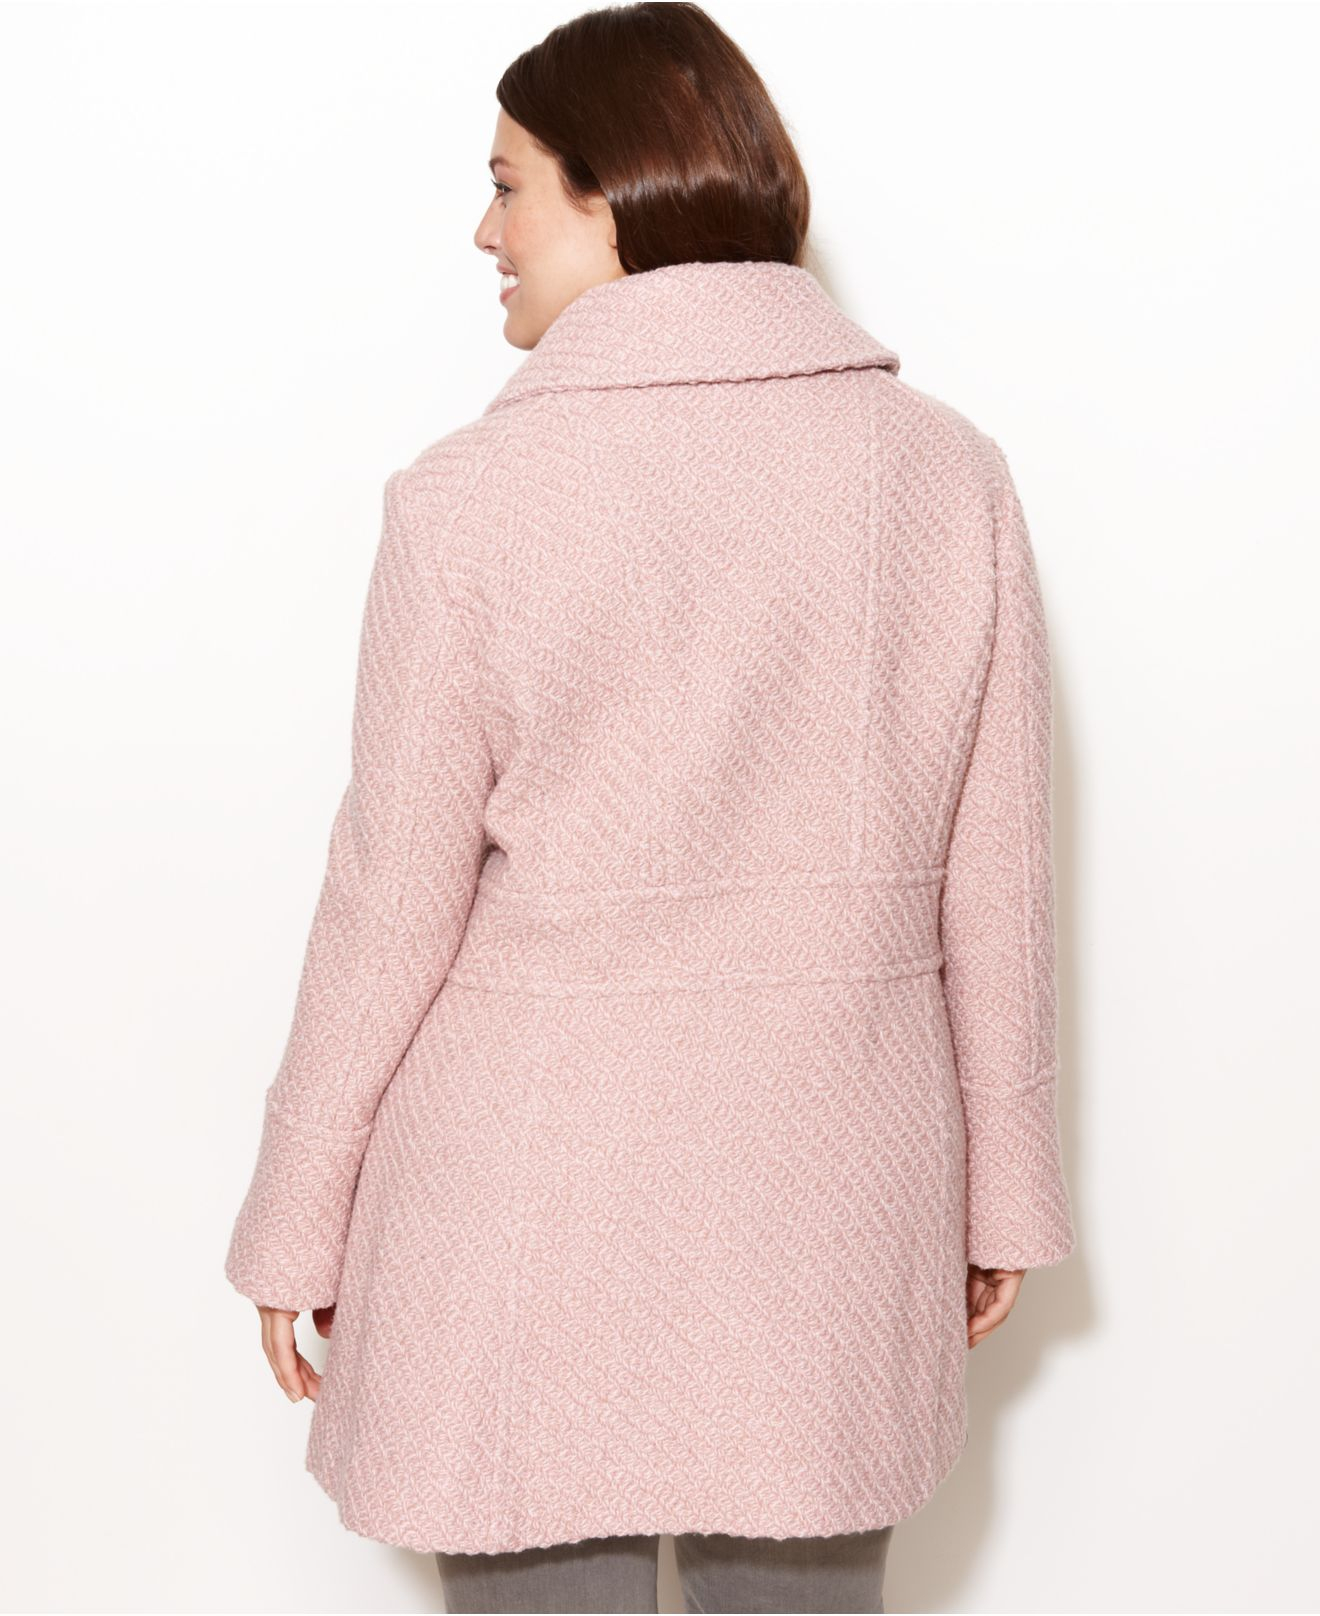 Jessica simpson Plus Size Braided A-Line Walker Coat in Pink | Lyst